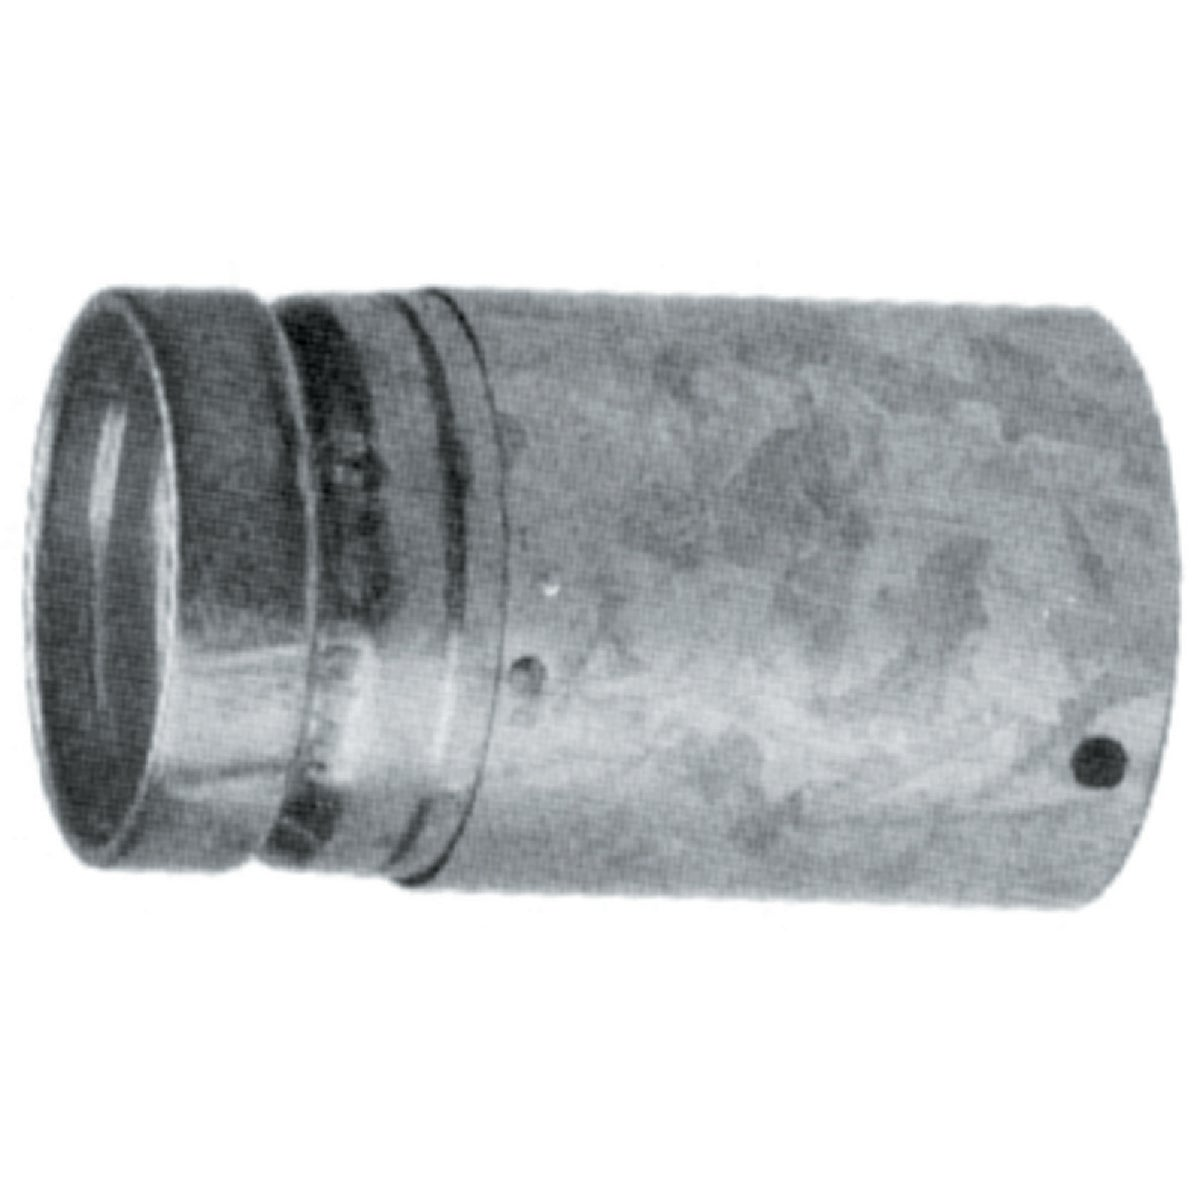 3X12 ADJ DBL WL GAS PIPE - 3RV-EZAJ12 by Selkirk Corporation